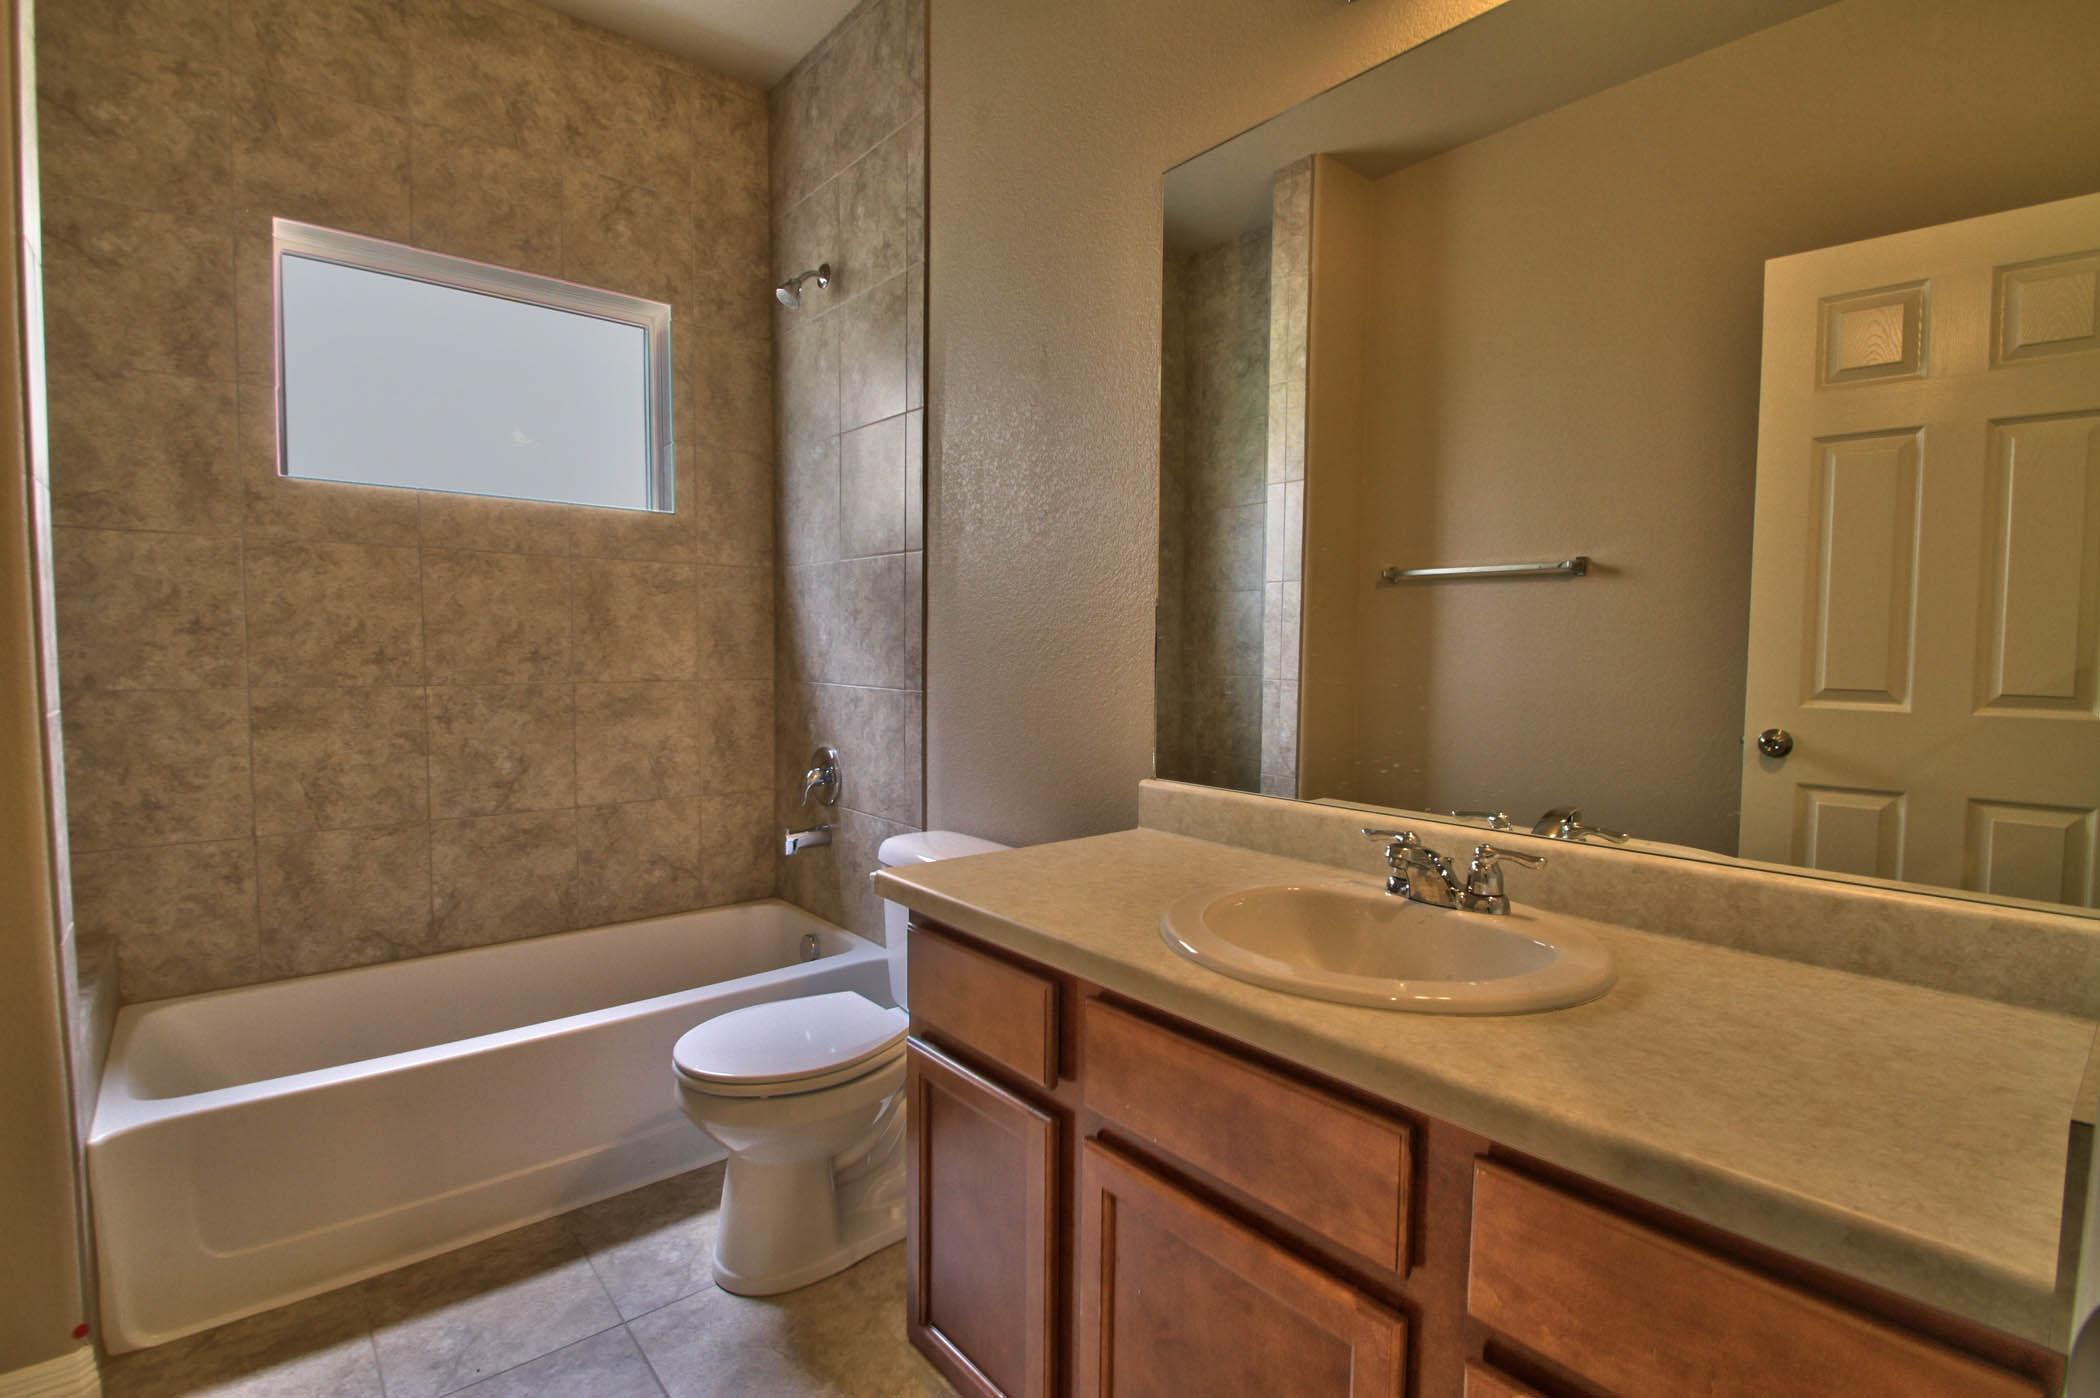 Bathroom featured in the Cutler (Unfinished Basement) By Reunion Homes in Colorado Springs, CO